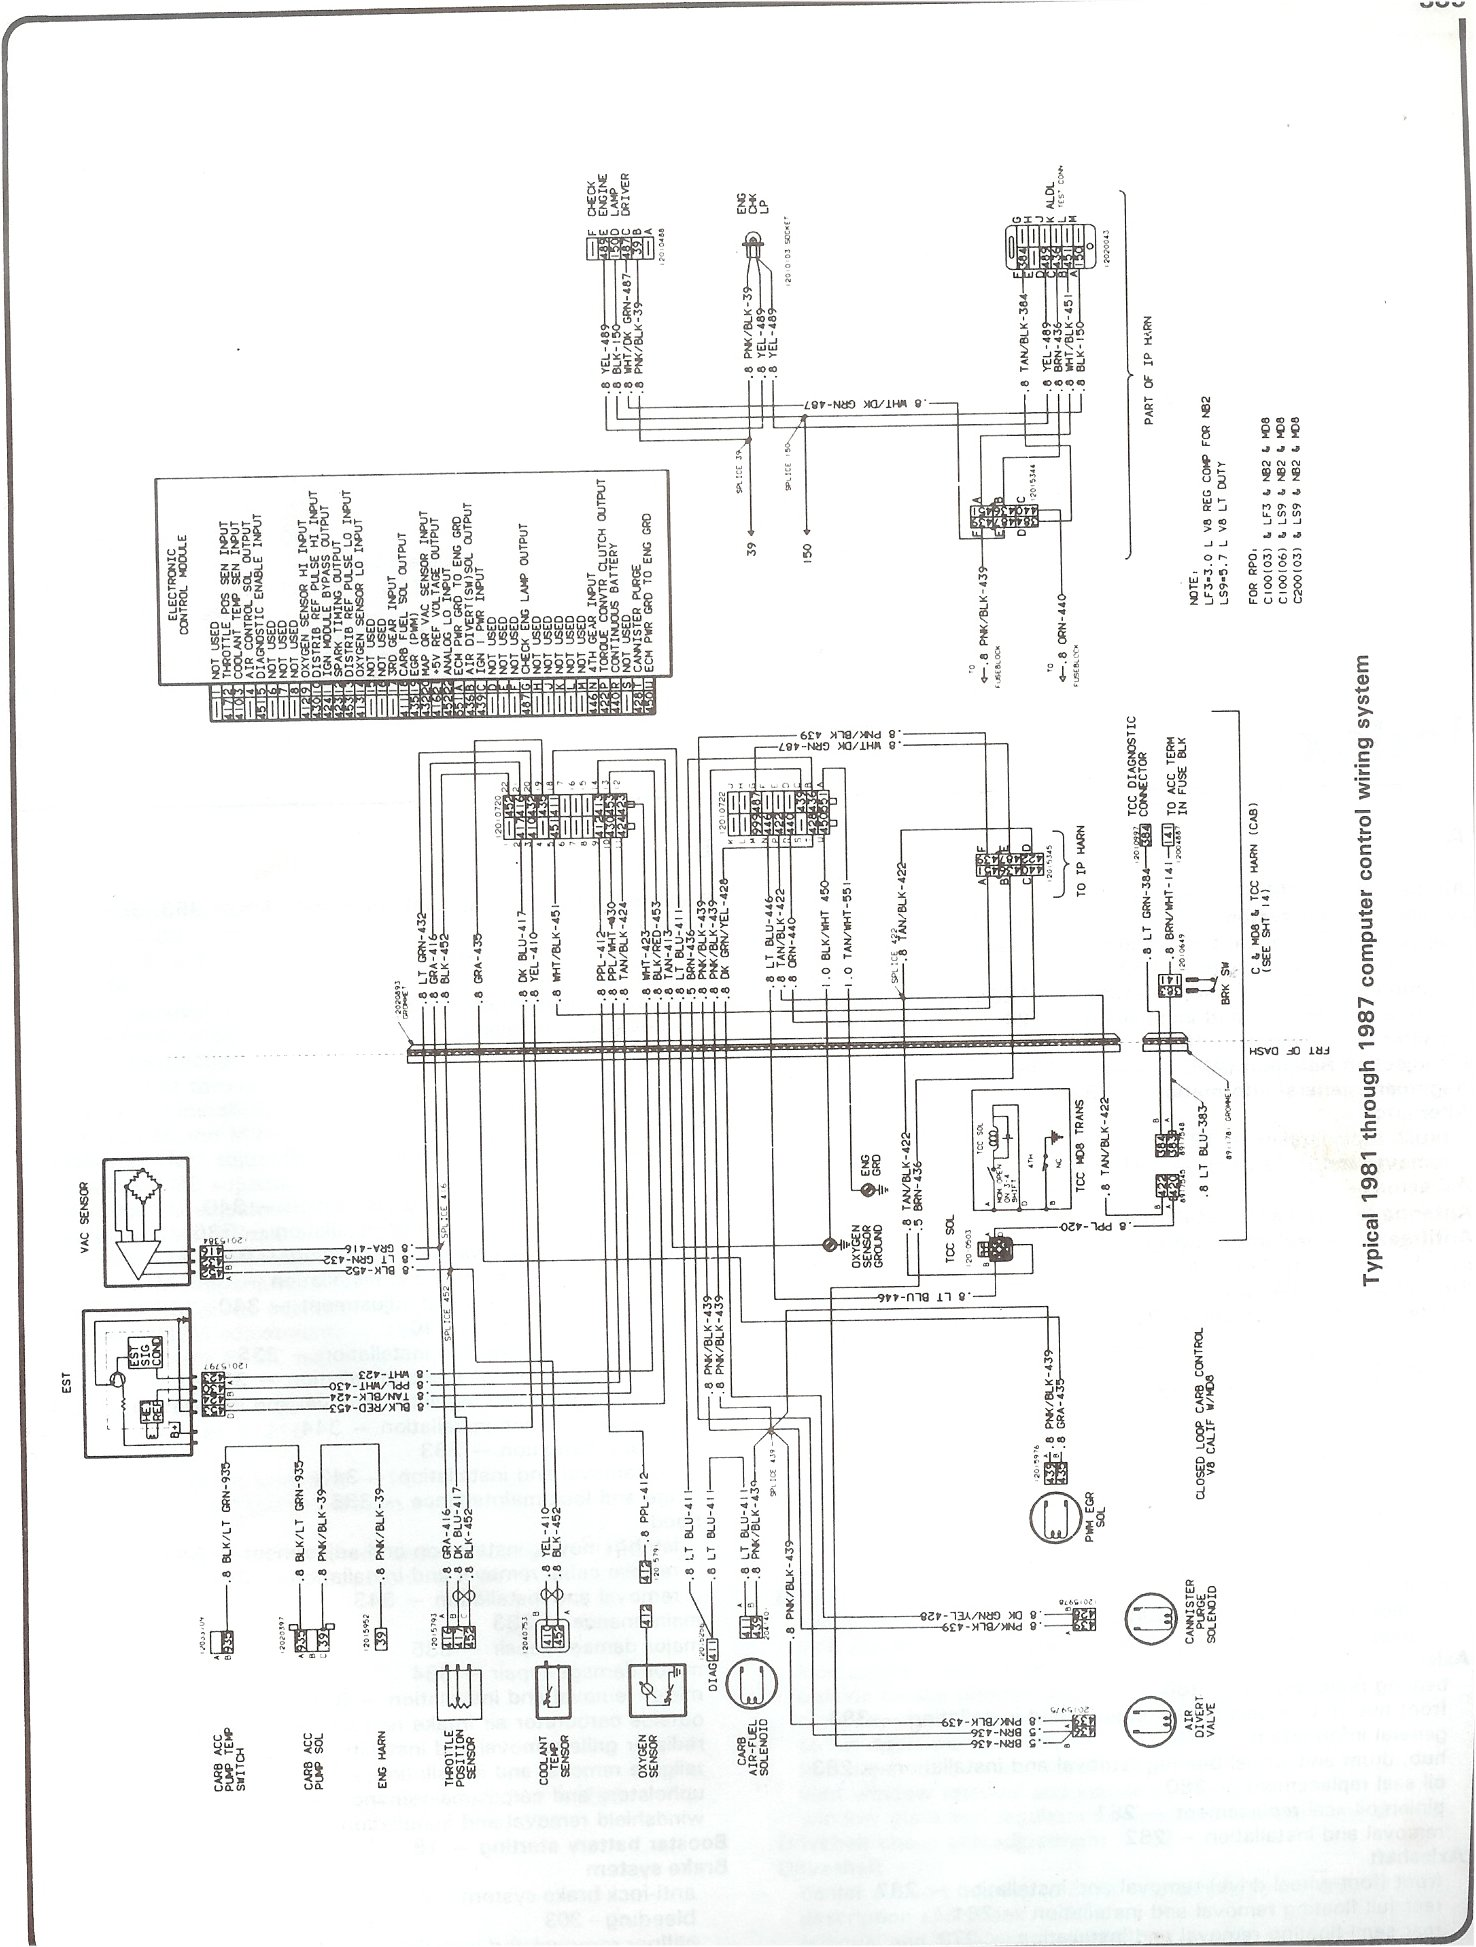 1977 Chevy C10 Wiring Diagrams Diagram Online 1970 Engine 1984 Simple